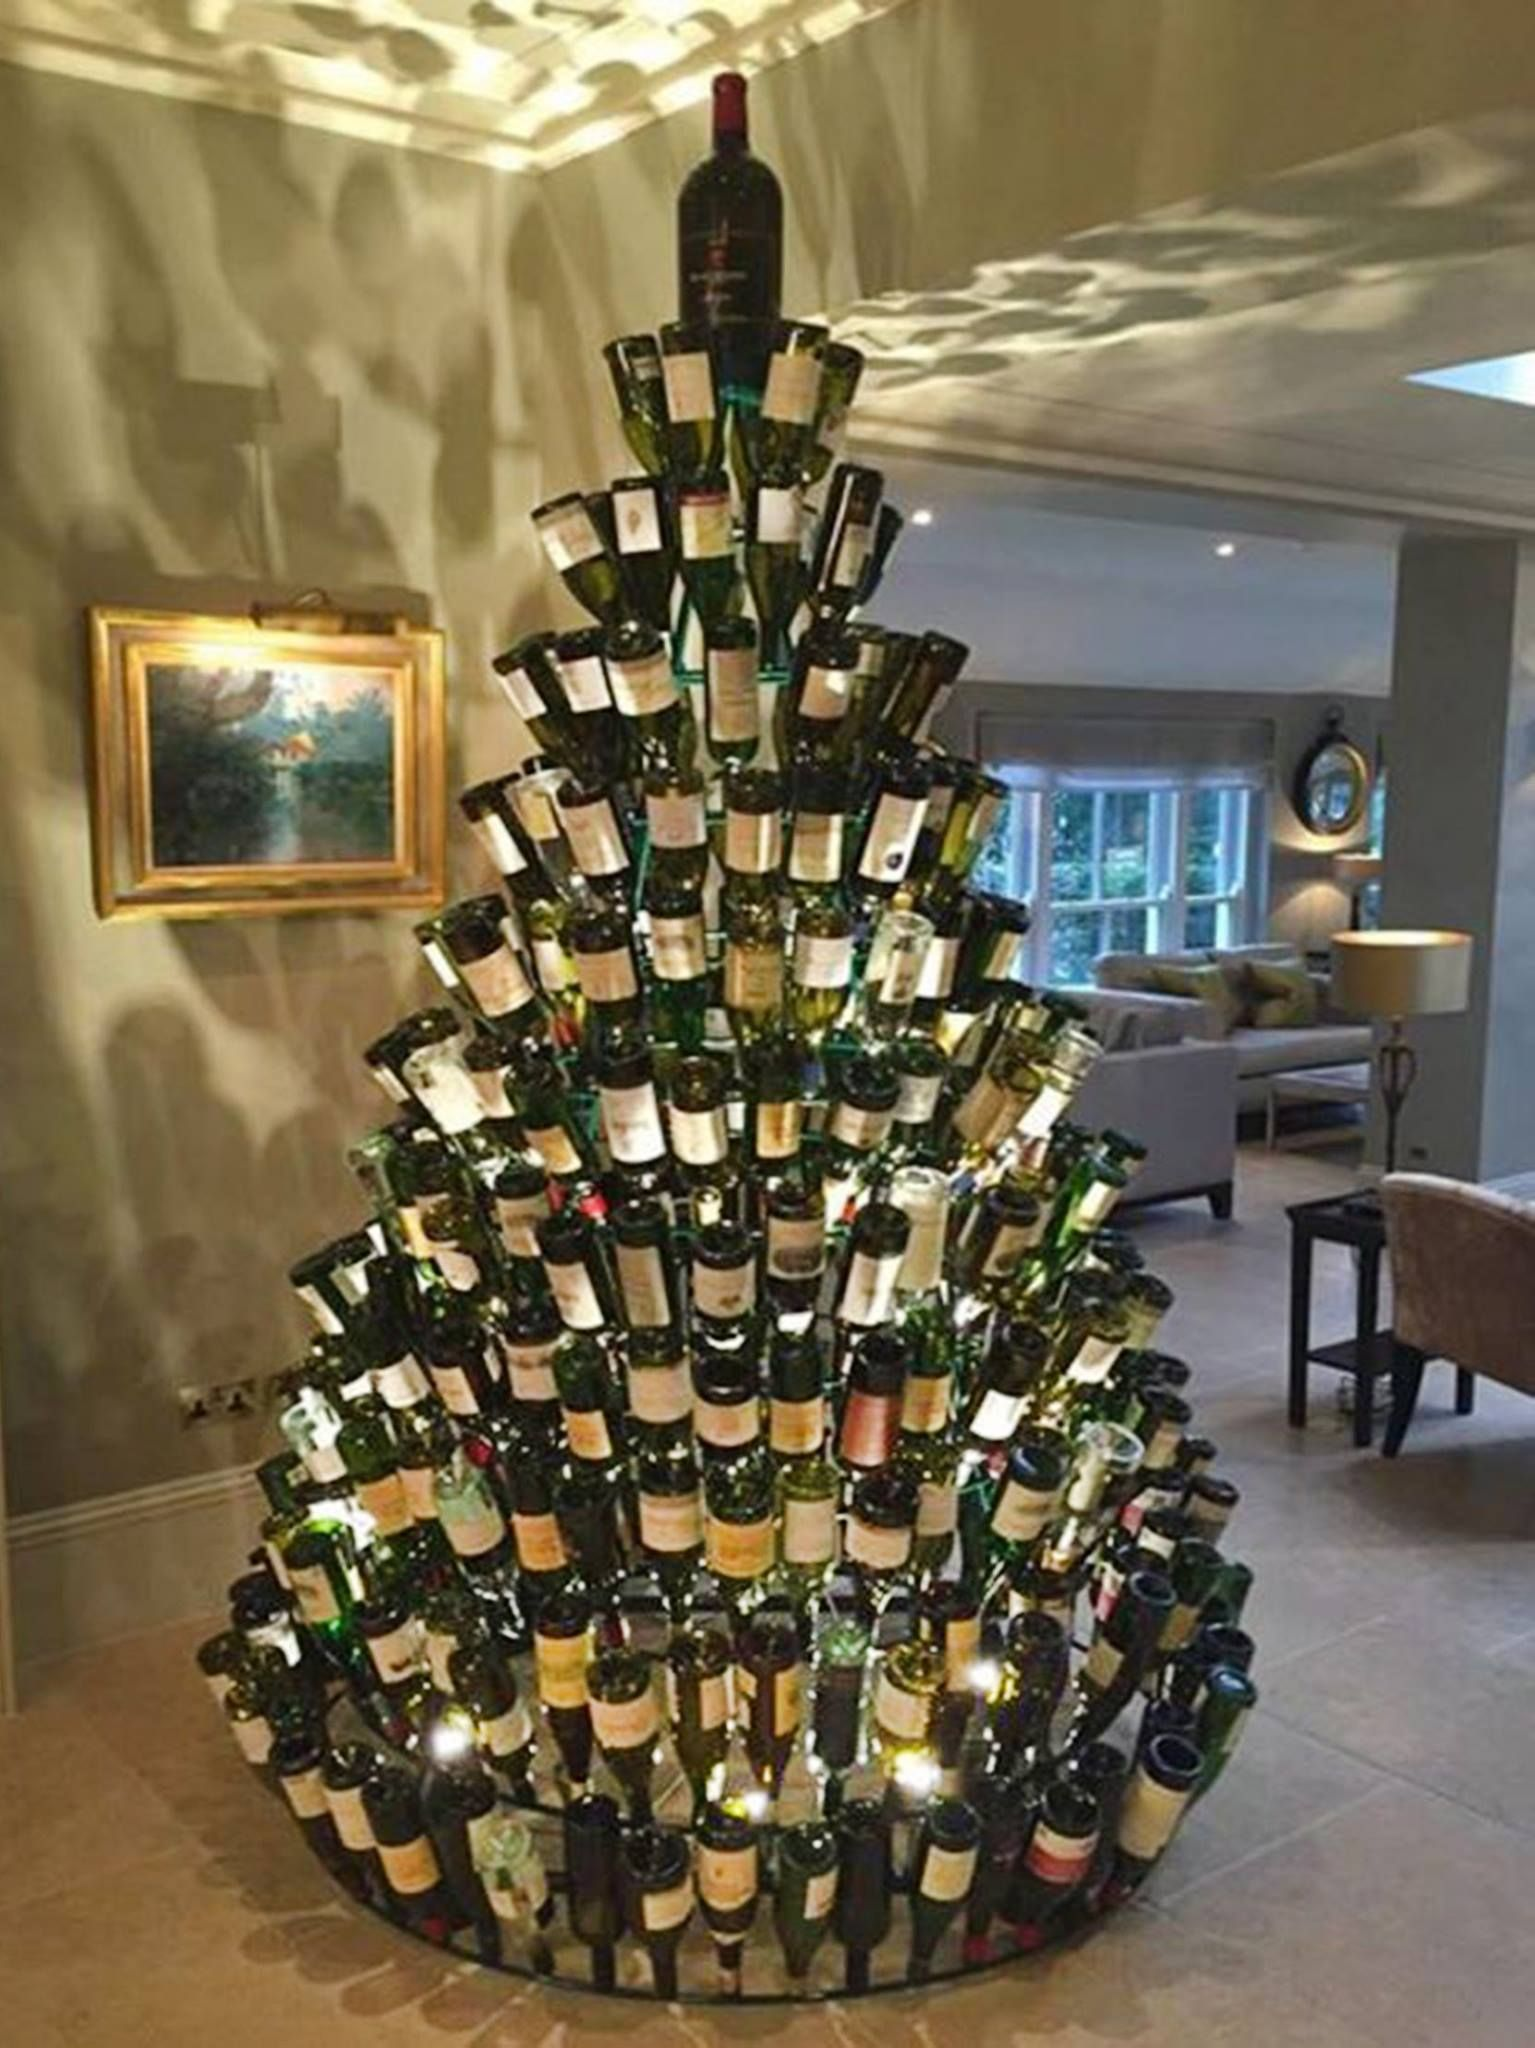 Wine Bottle Christmas Treethese are the most